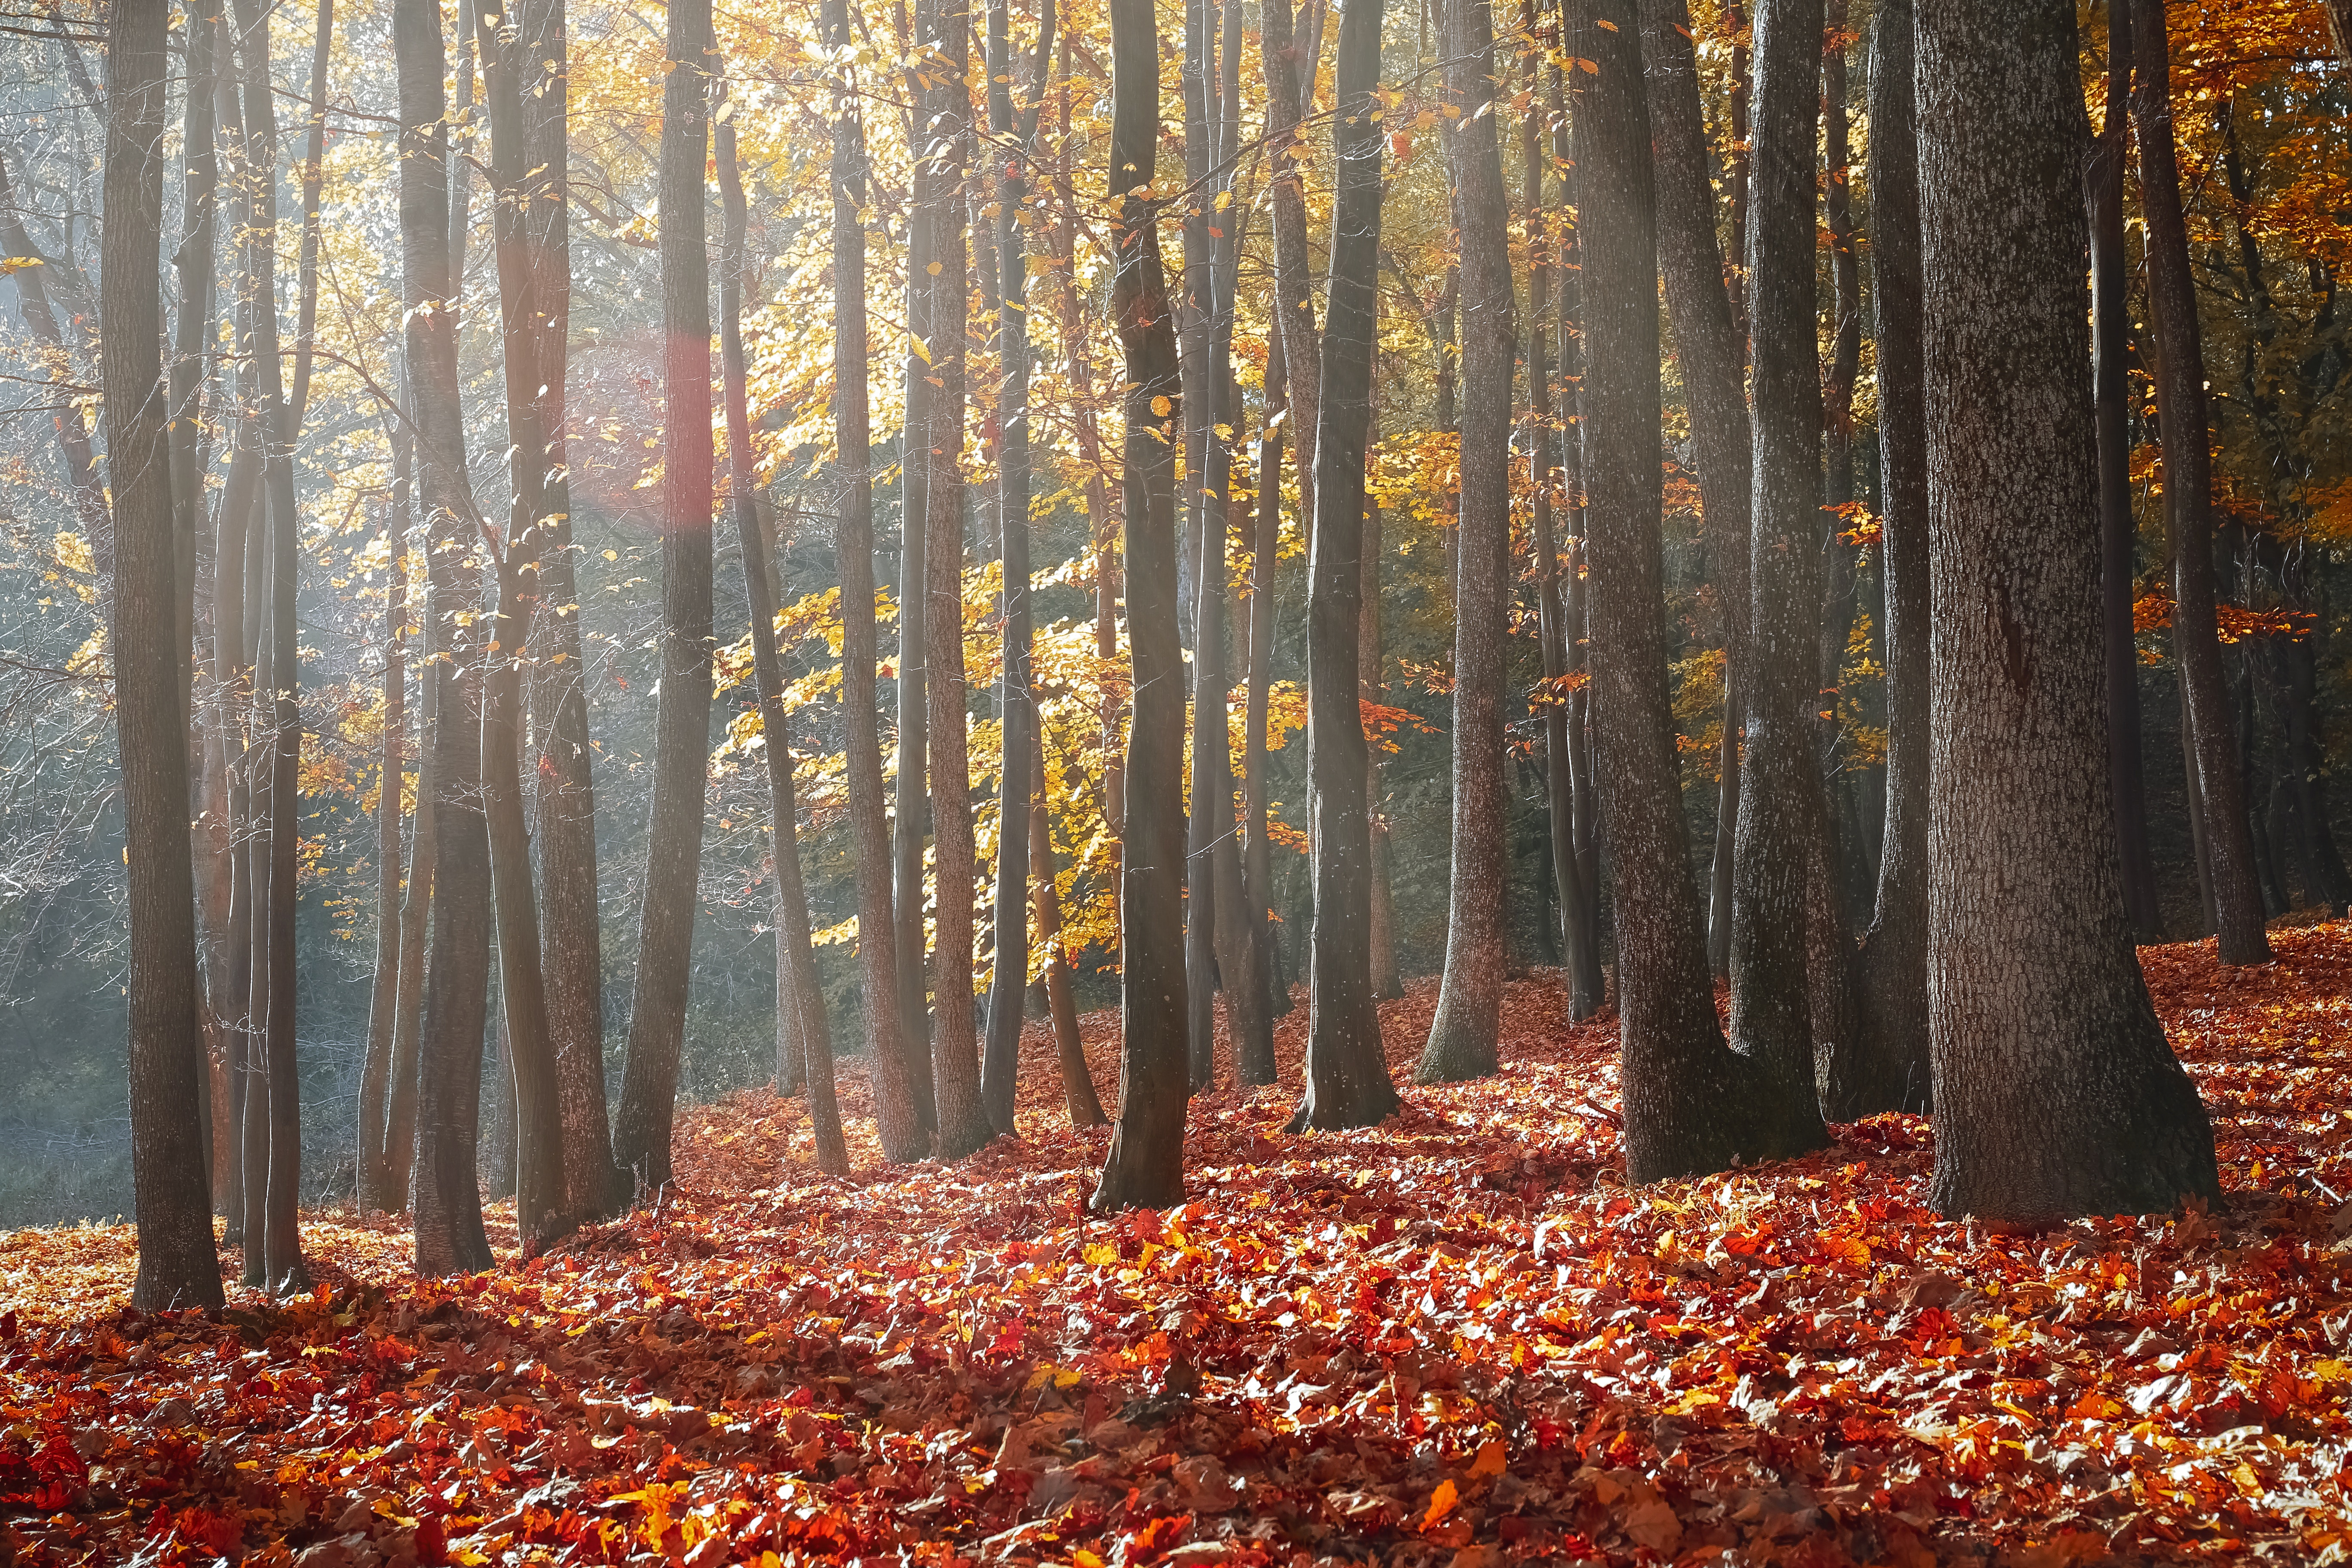 Landscape Photography of Forest during Autumn Season, Outdoors, Park, Nature, Mist, HQ Photo